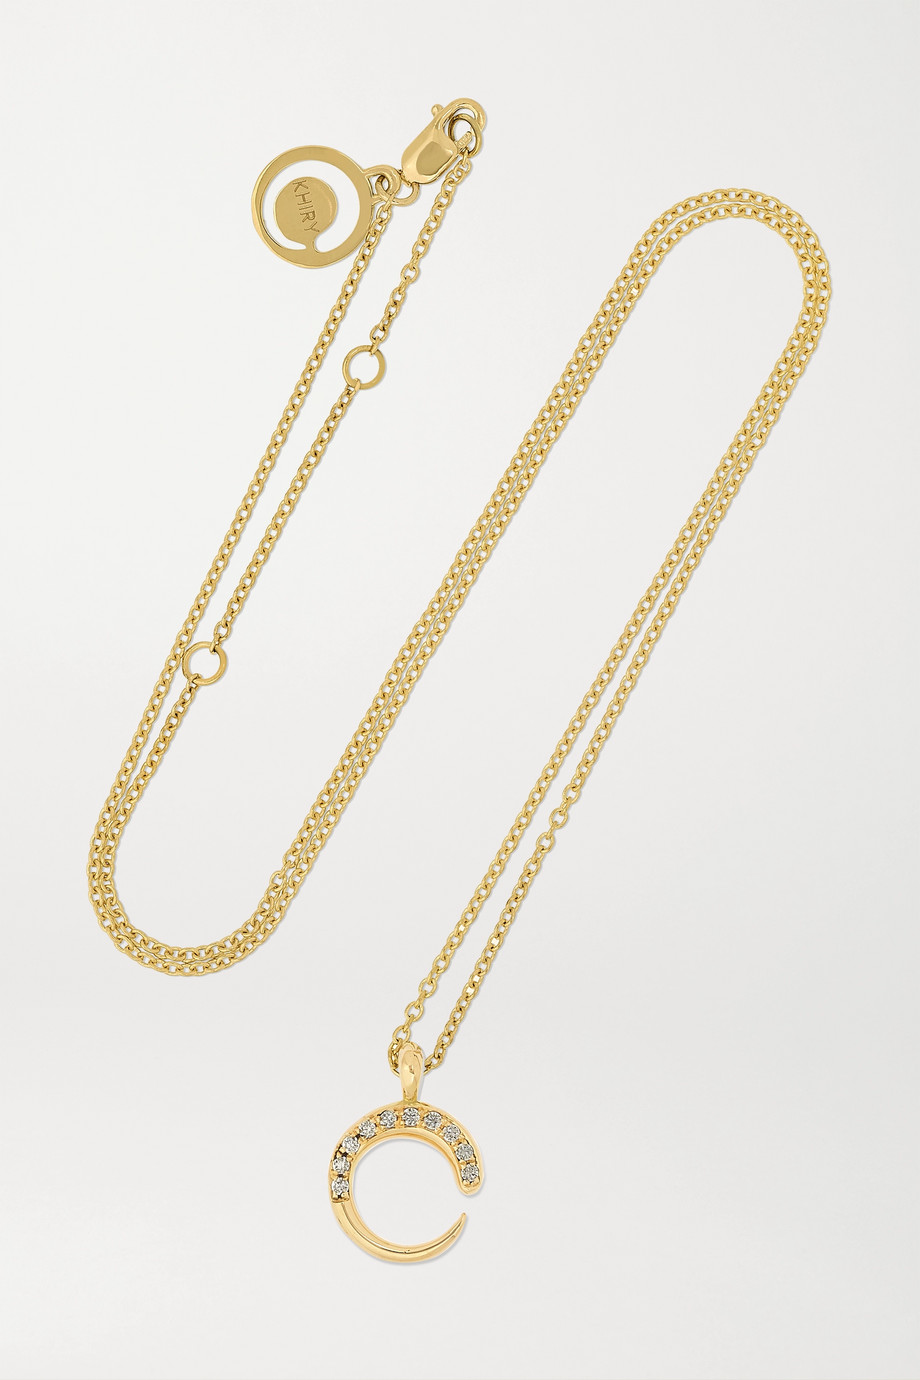 KHIRY FINE Mini Khartoum 18-karat gold diamond necklace